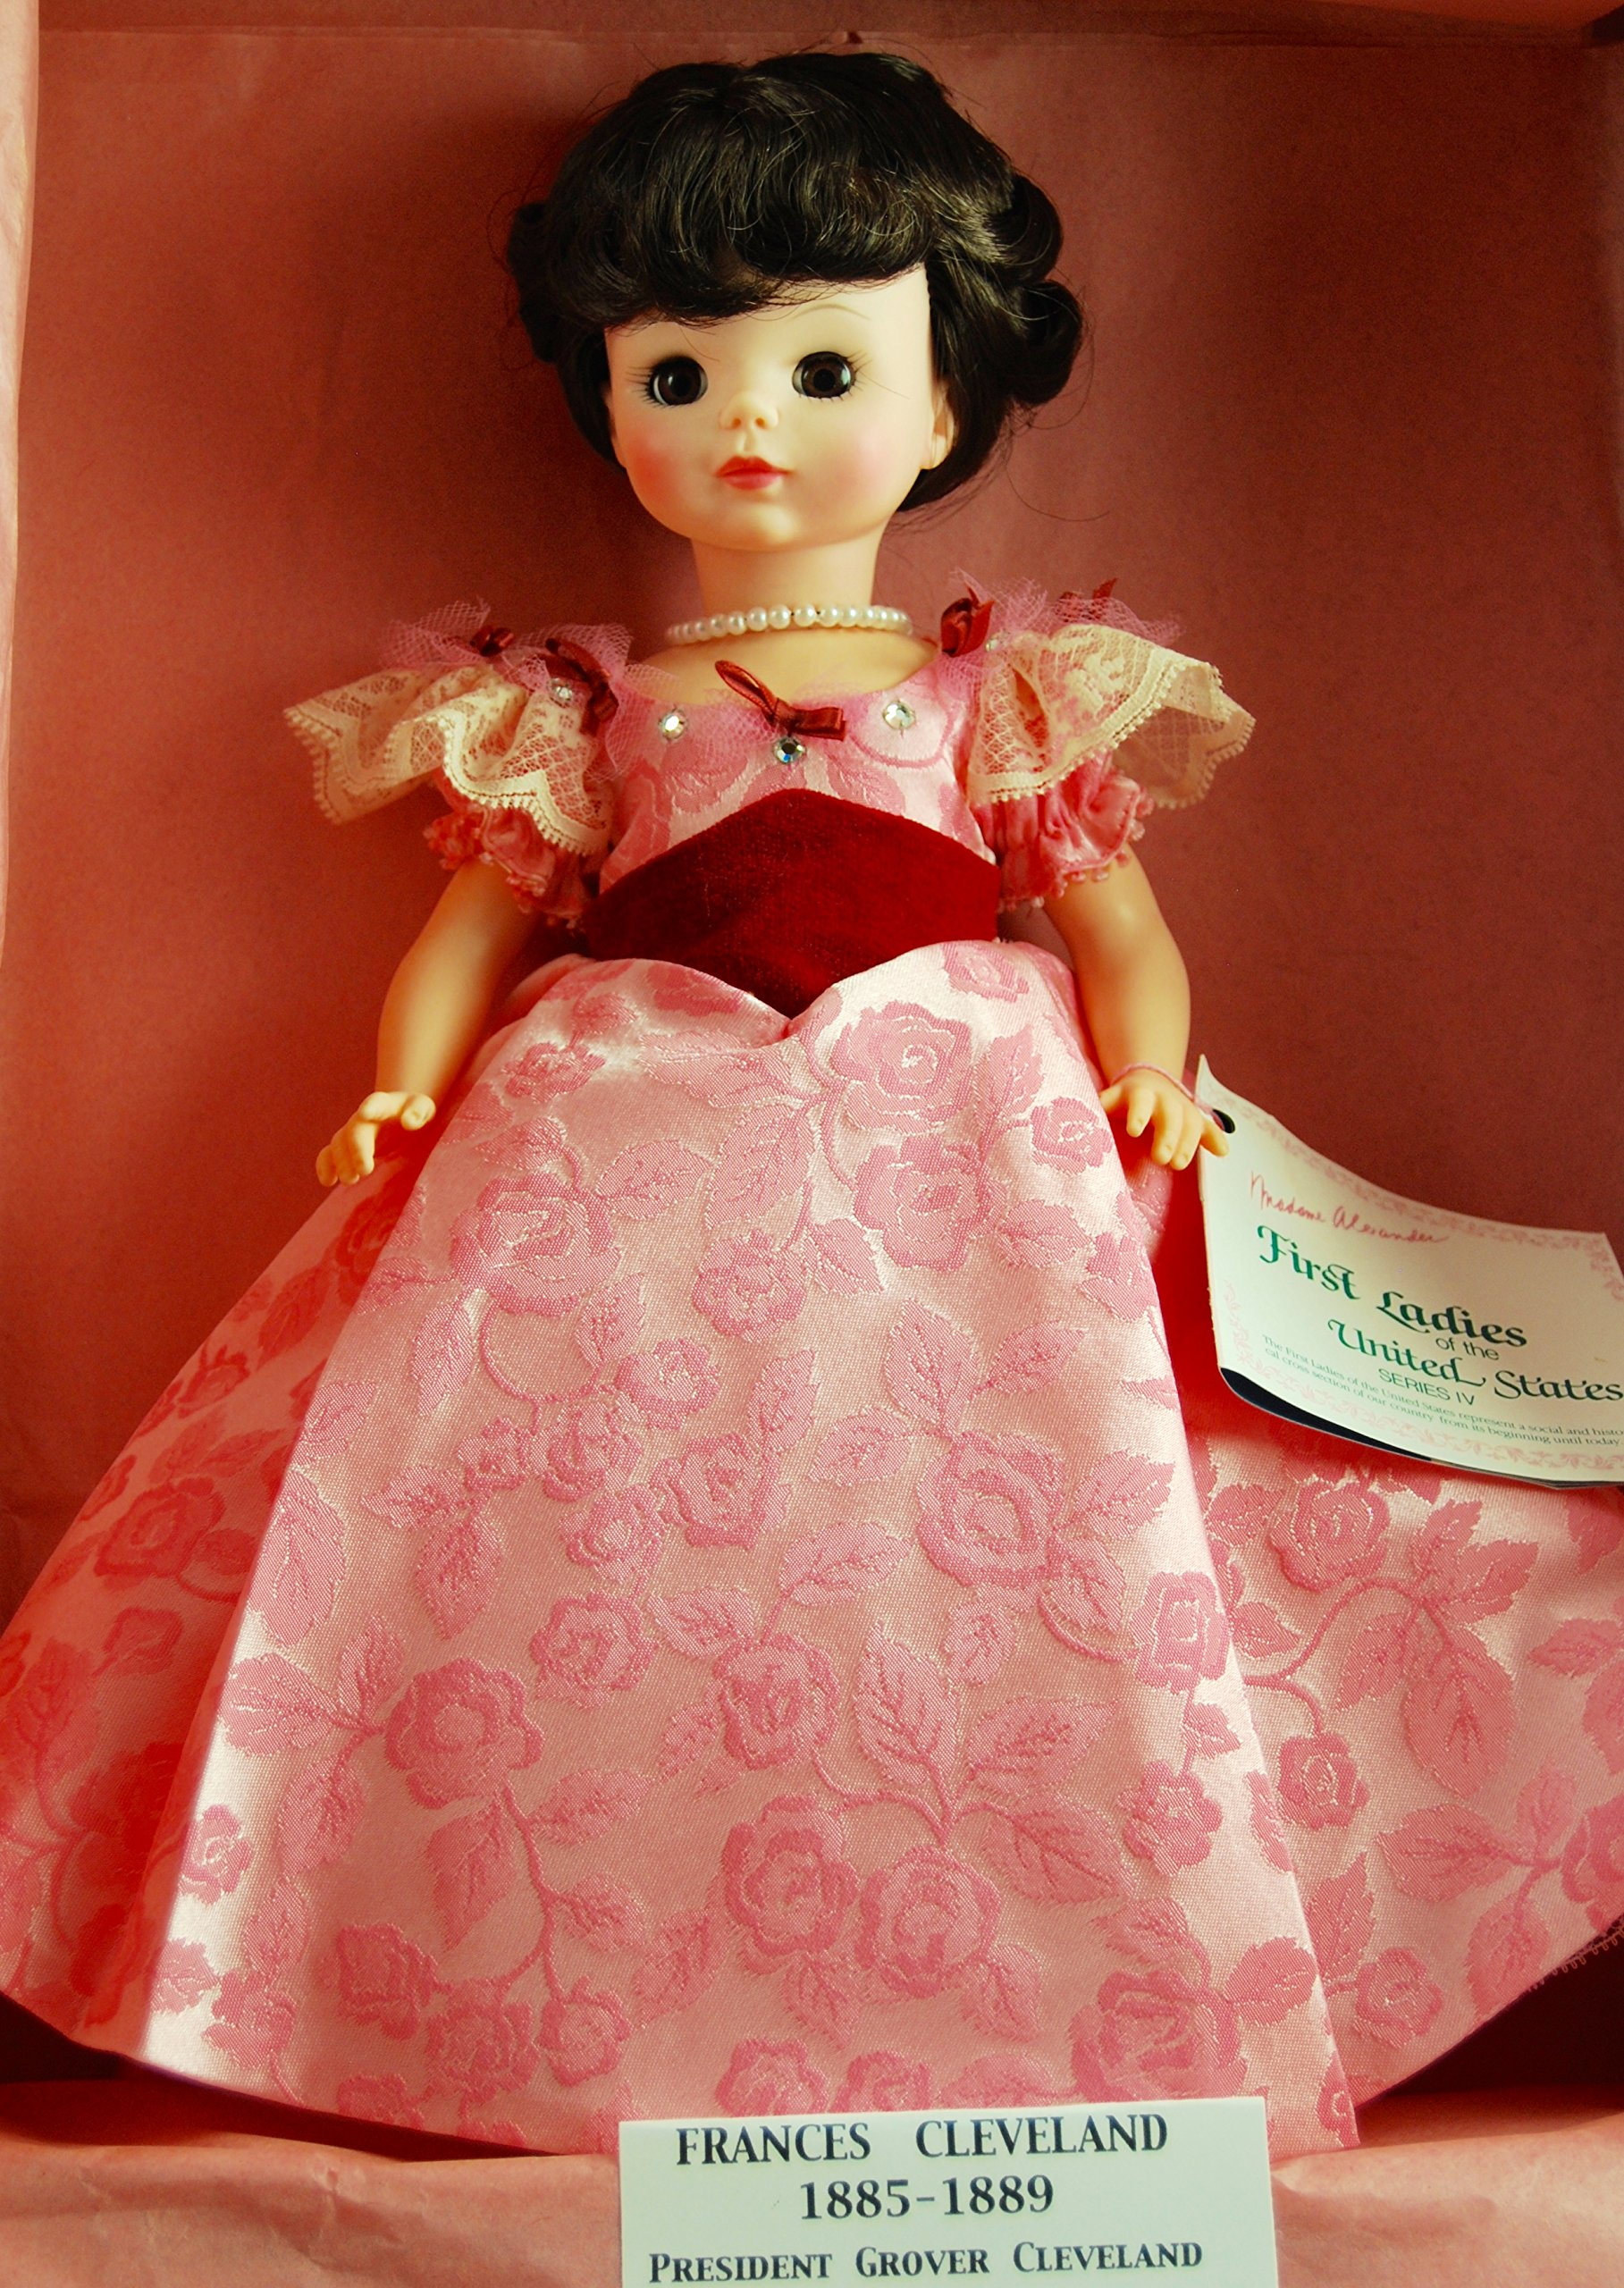 Madame Alexander #1423 - Vintage Francis Cleveland Doll (1885 -1889) - First Lady Collection Series IV - 14 Inches - OOP - New Doll - Very Rare - Collectible